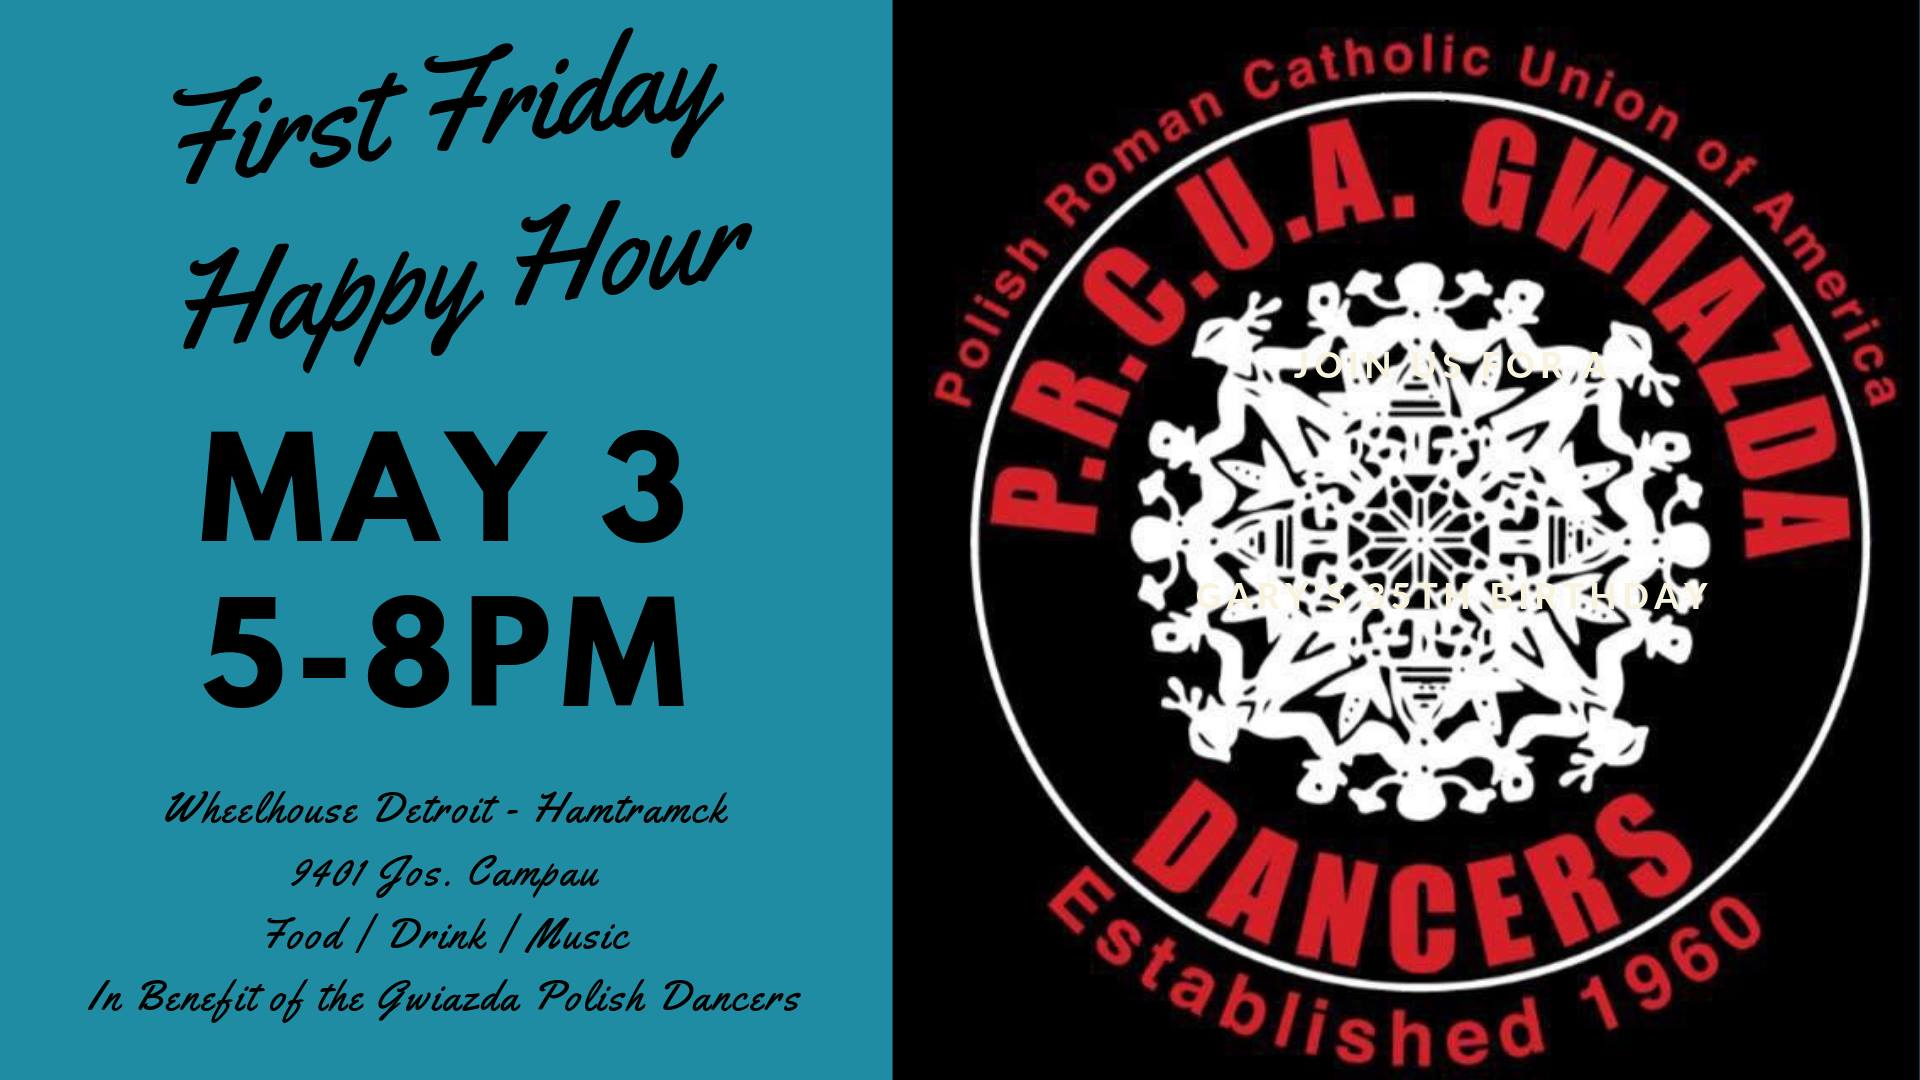 Join us for our May First Friday Happy Hour! In support of the  Gwiazda Polish Dancers  and featuring food from Srodek's and Evaline Street Food Co.  Next Up: June 7, Kelli's B-Day!